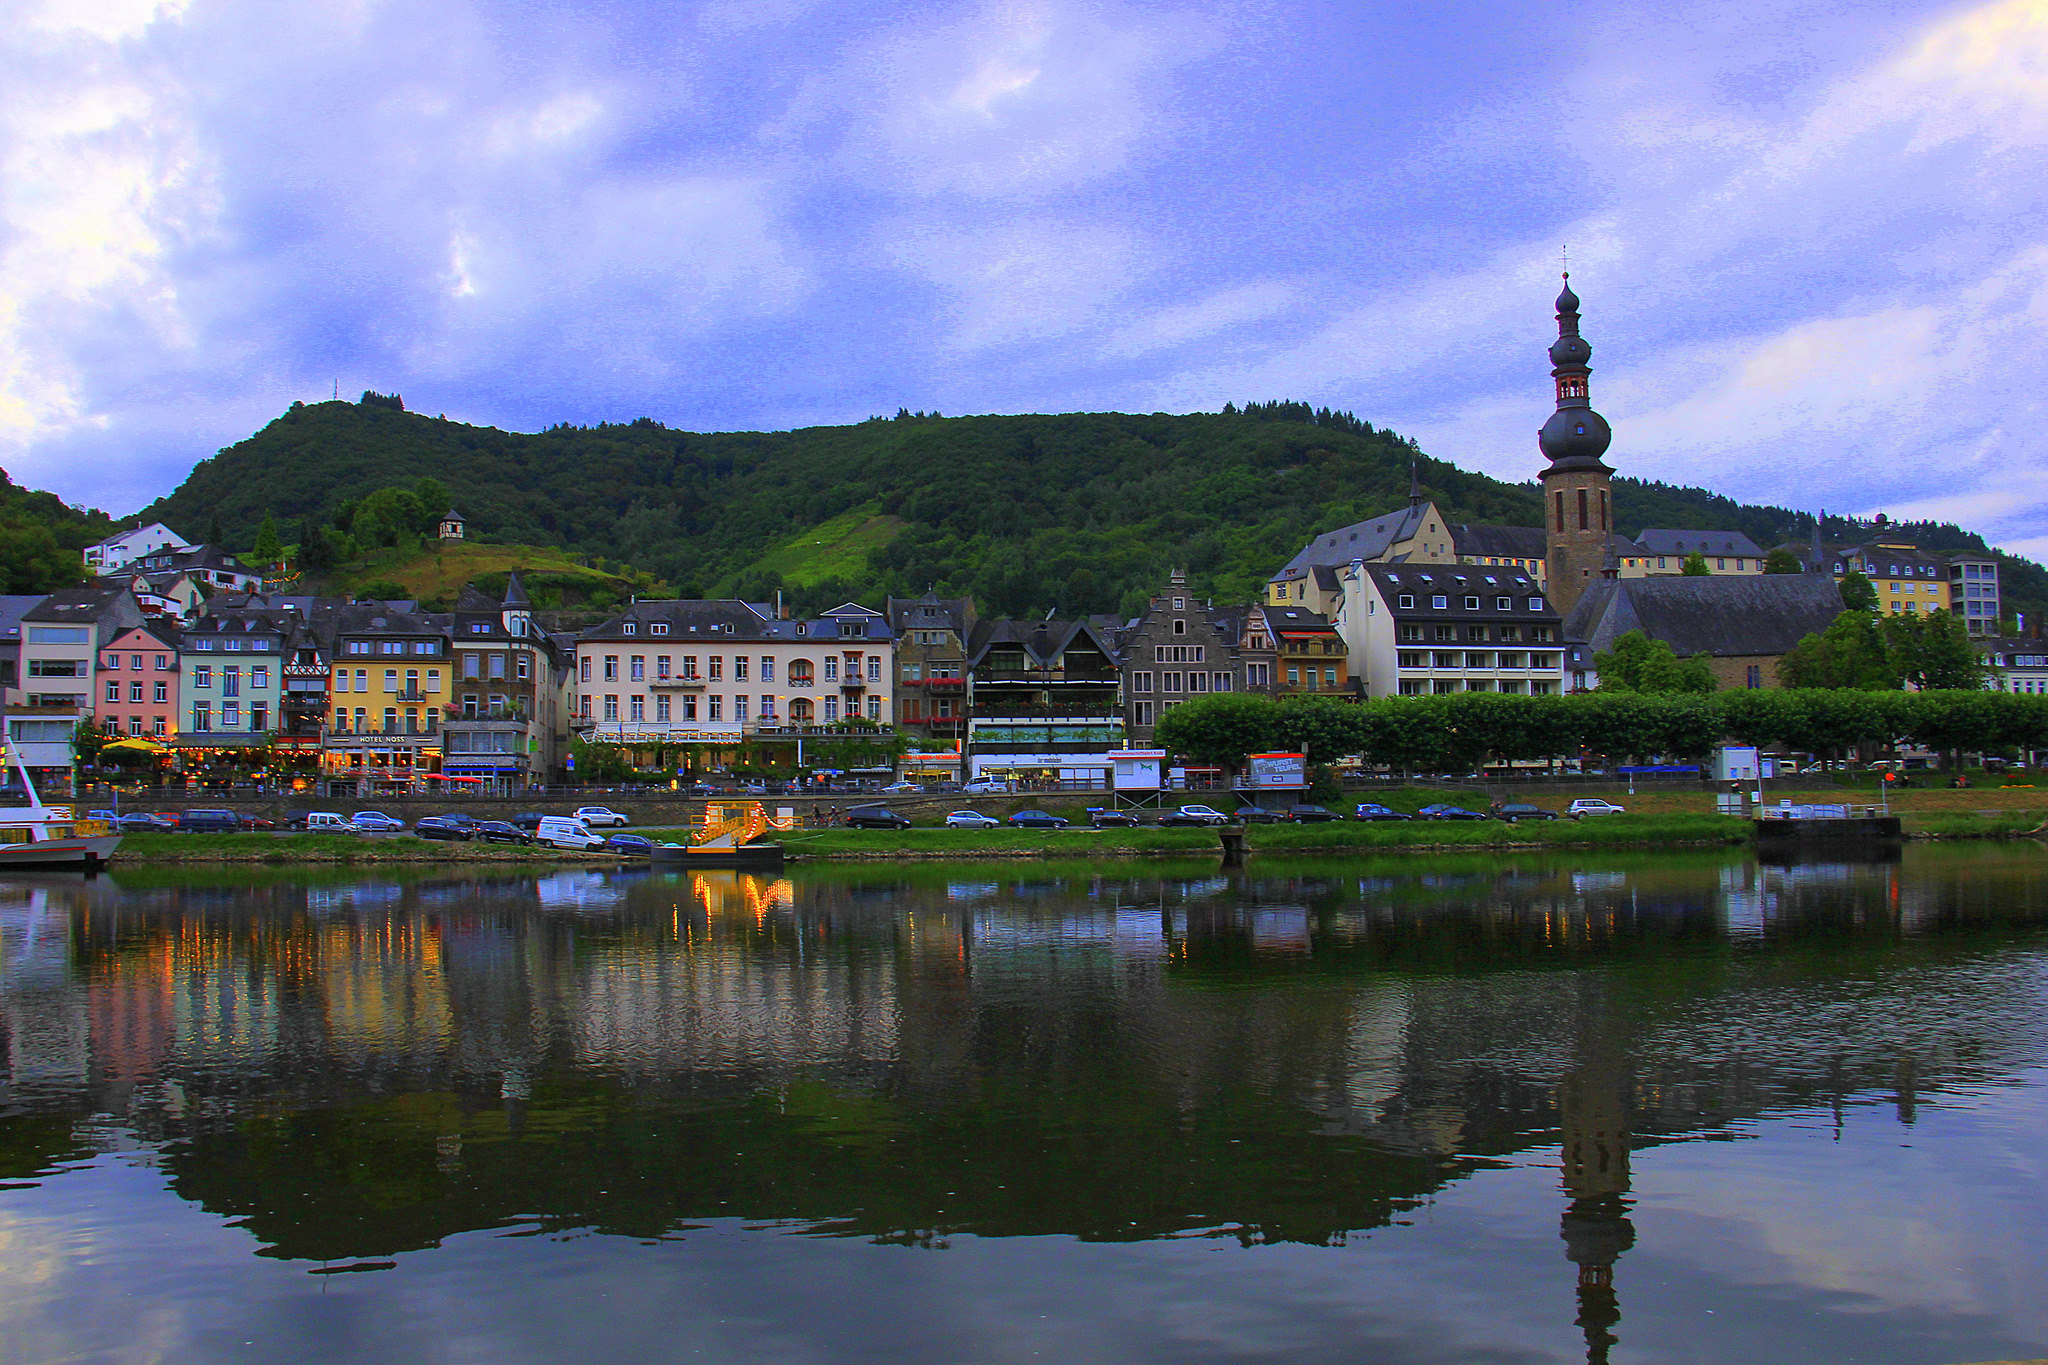 Cochem is on Moselle river